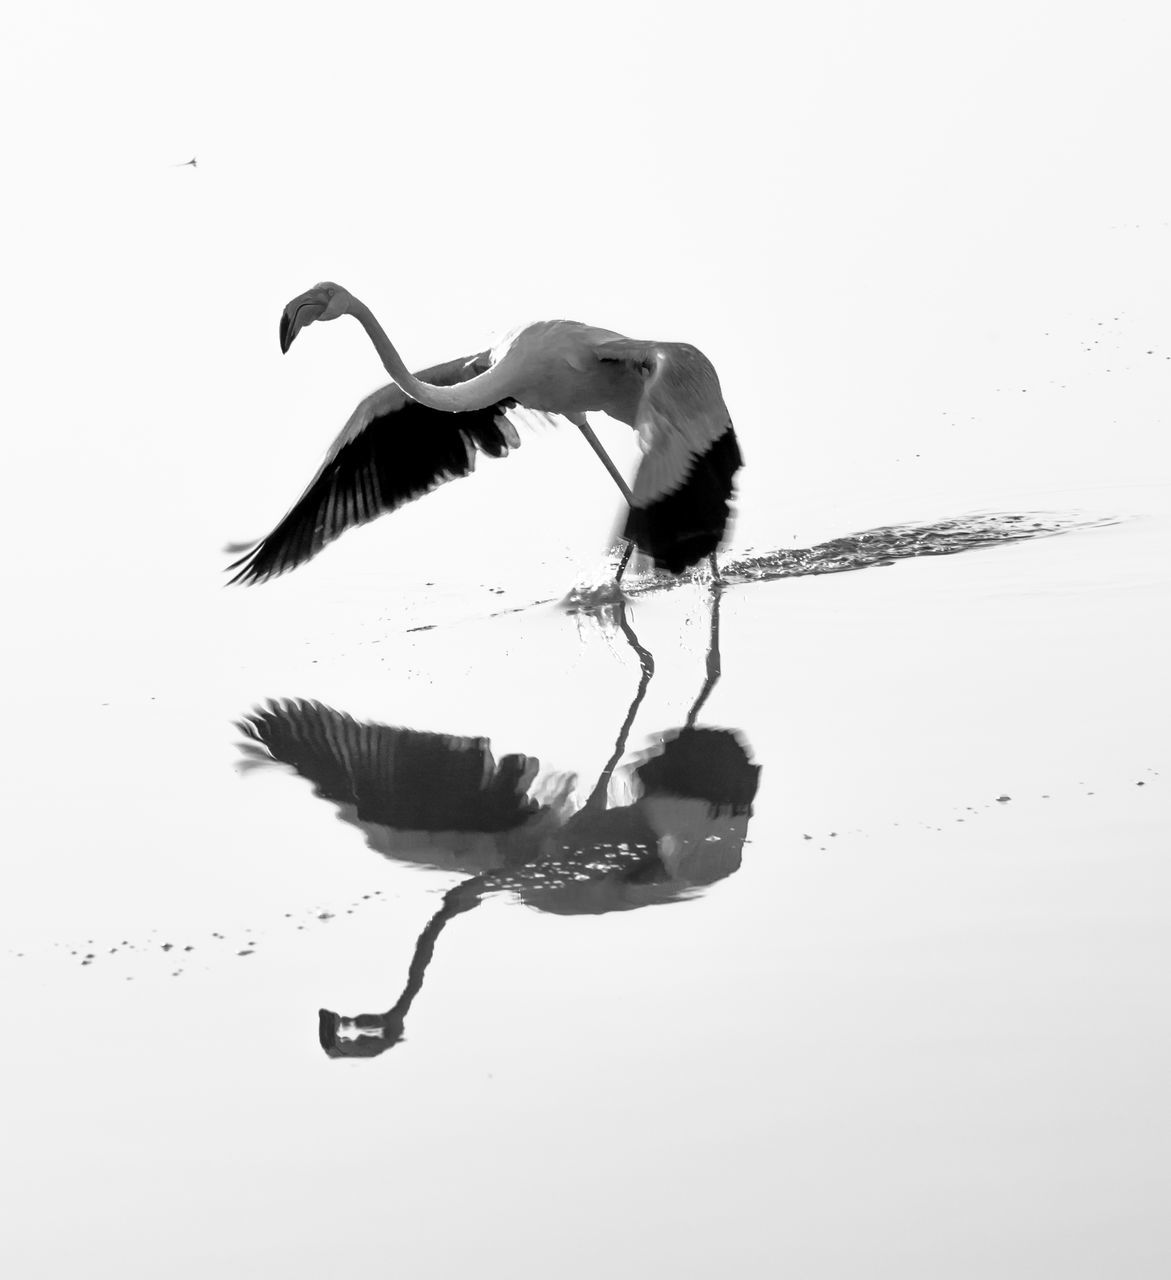 animal themes, one animal, animals in the wild, bird, animal wildlife, reflection, full length, nature, water, outdoors, clear sky, no people, day, spread wings, sky